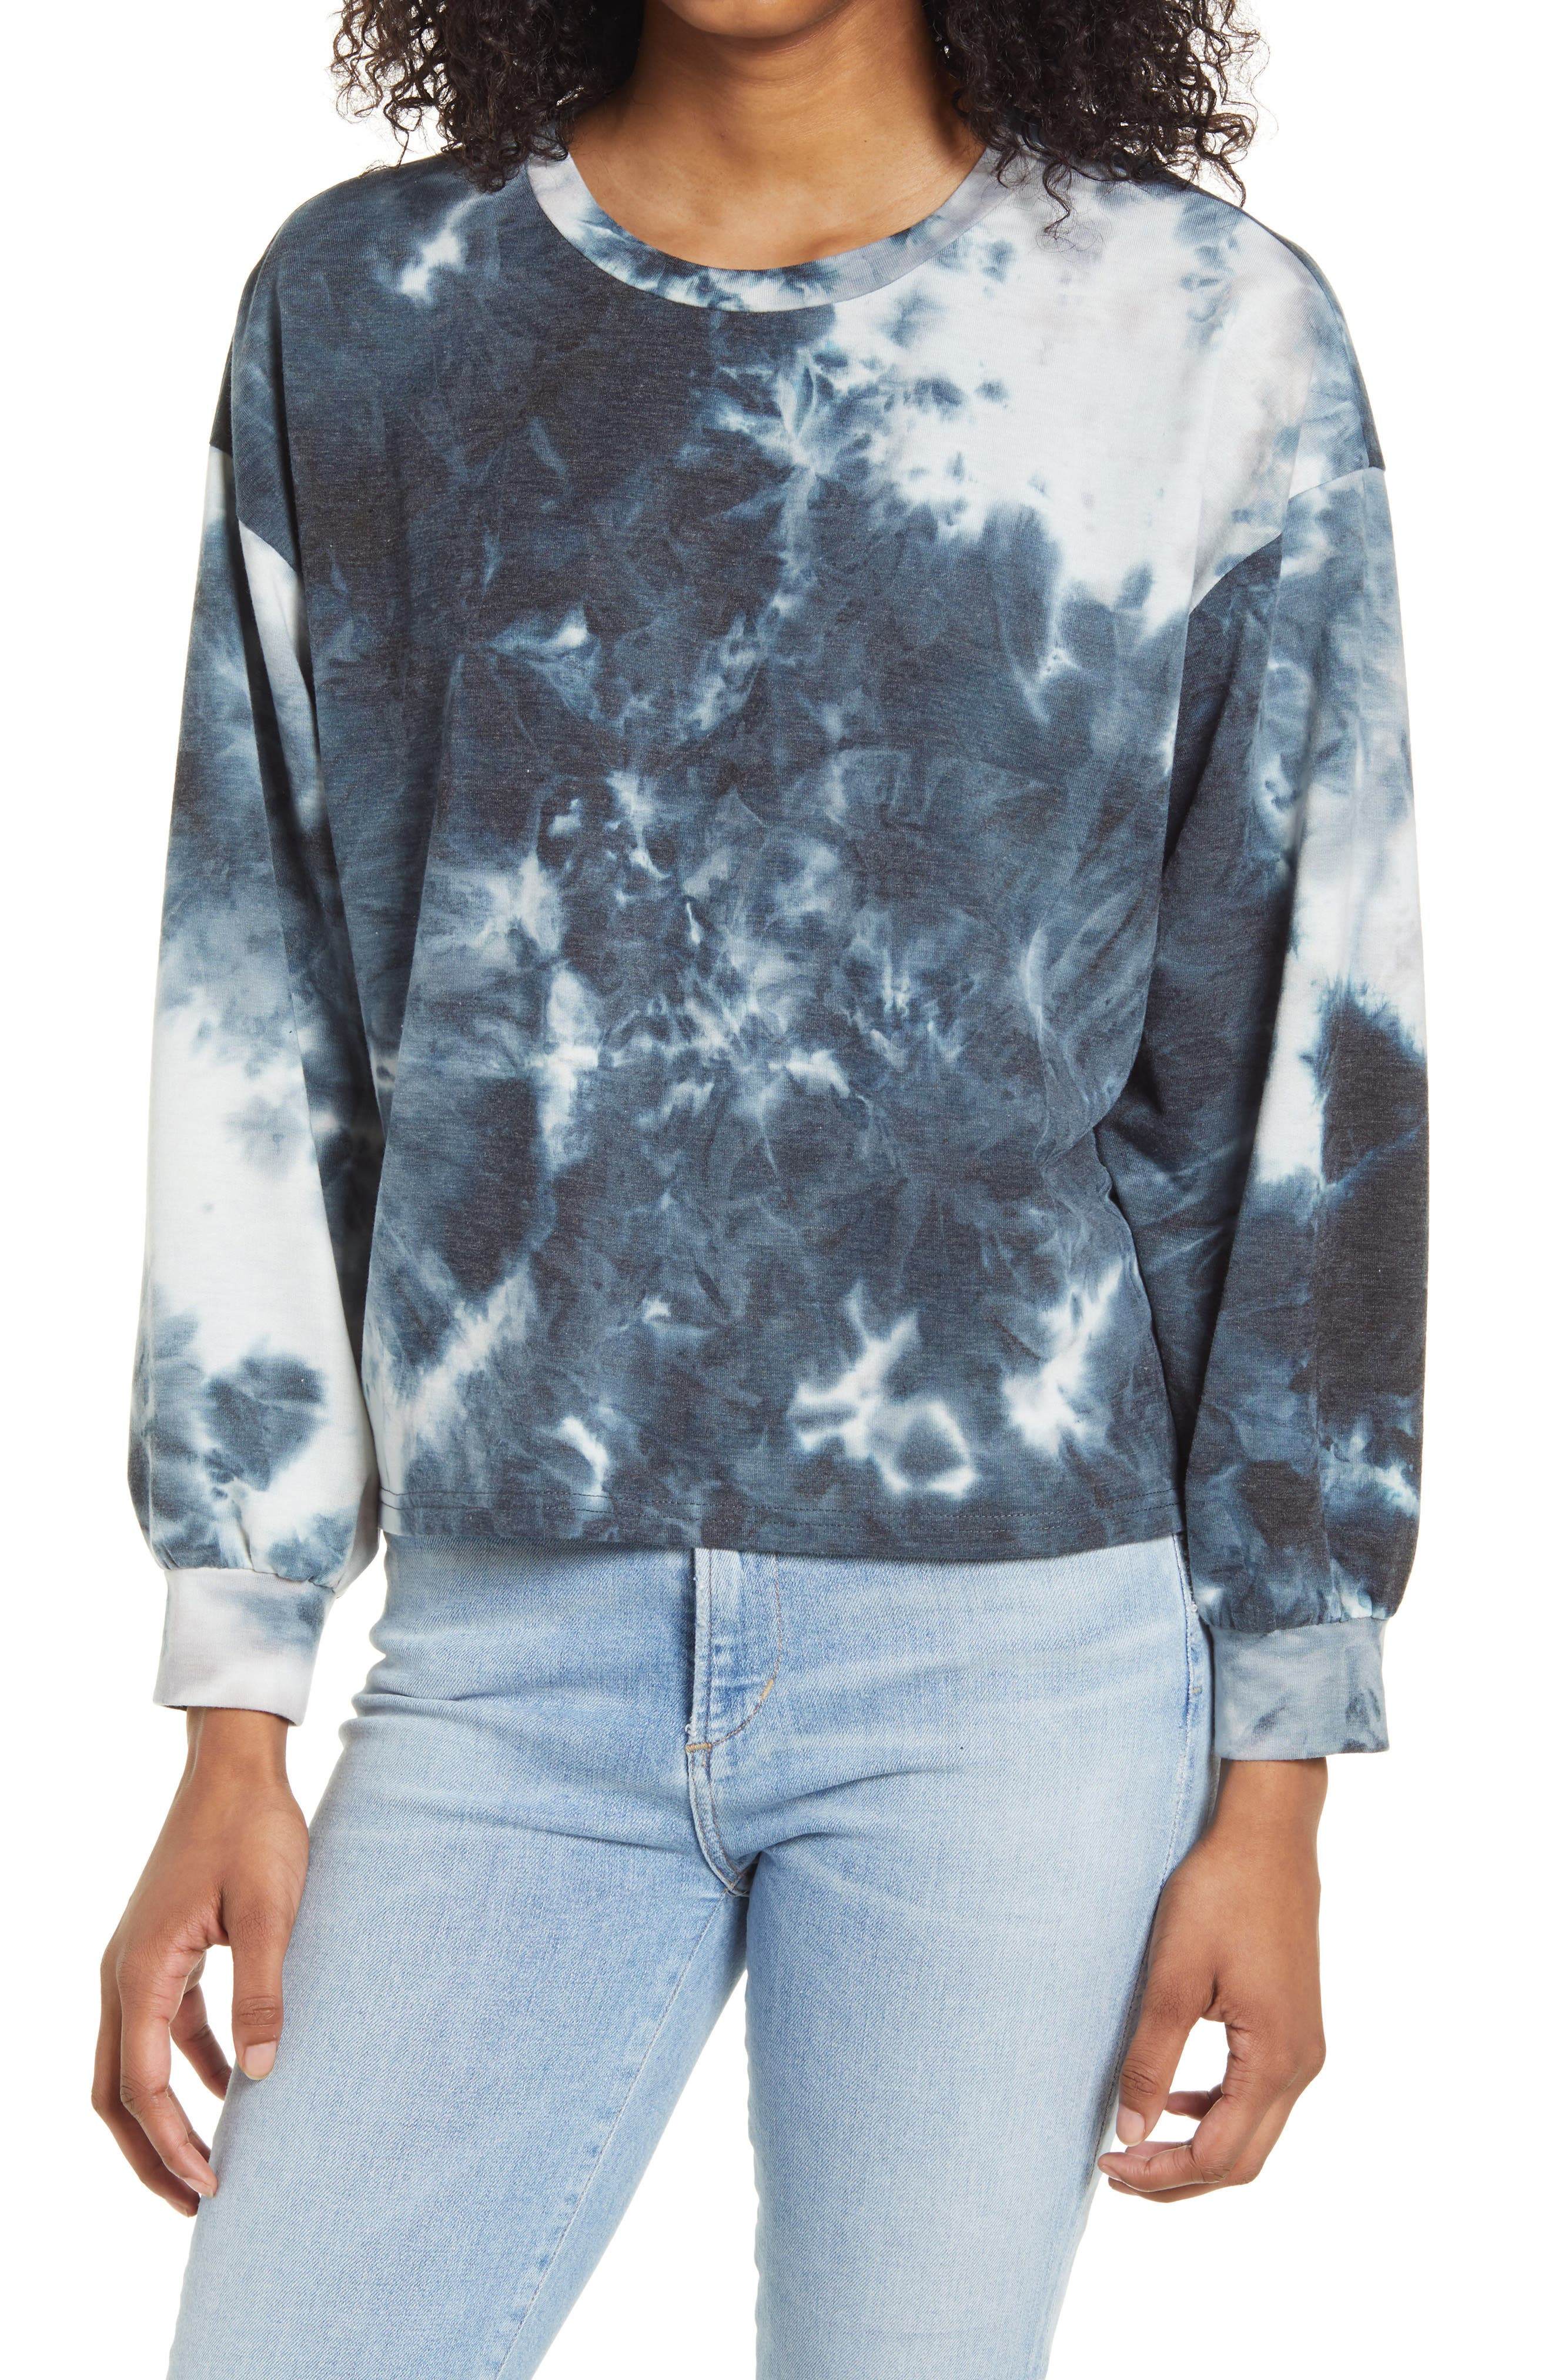 Get in on the tie-dye trend in the most comfortable way with this relaxed sweatshirt cut from a touchably soft fleece fabric. Style Name: All In Favor Tie Dye Sweatshirt. Style Number: 6133199. Available in stores.